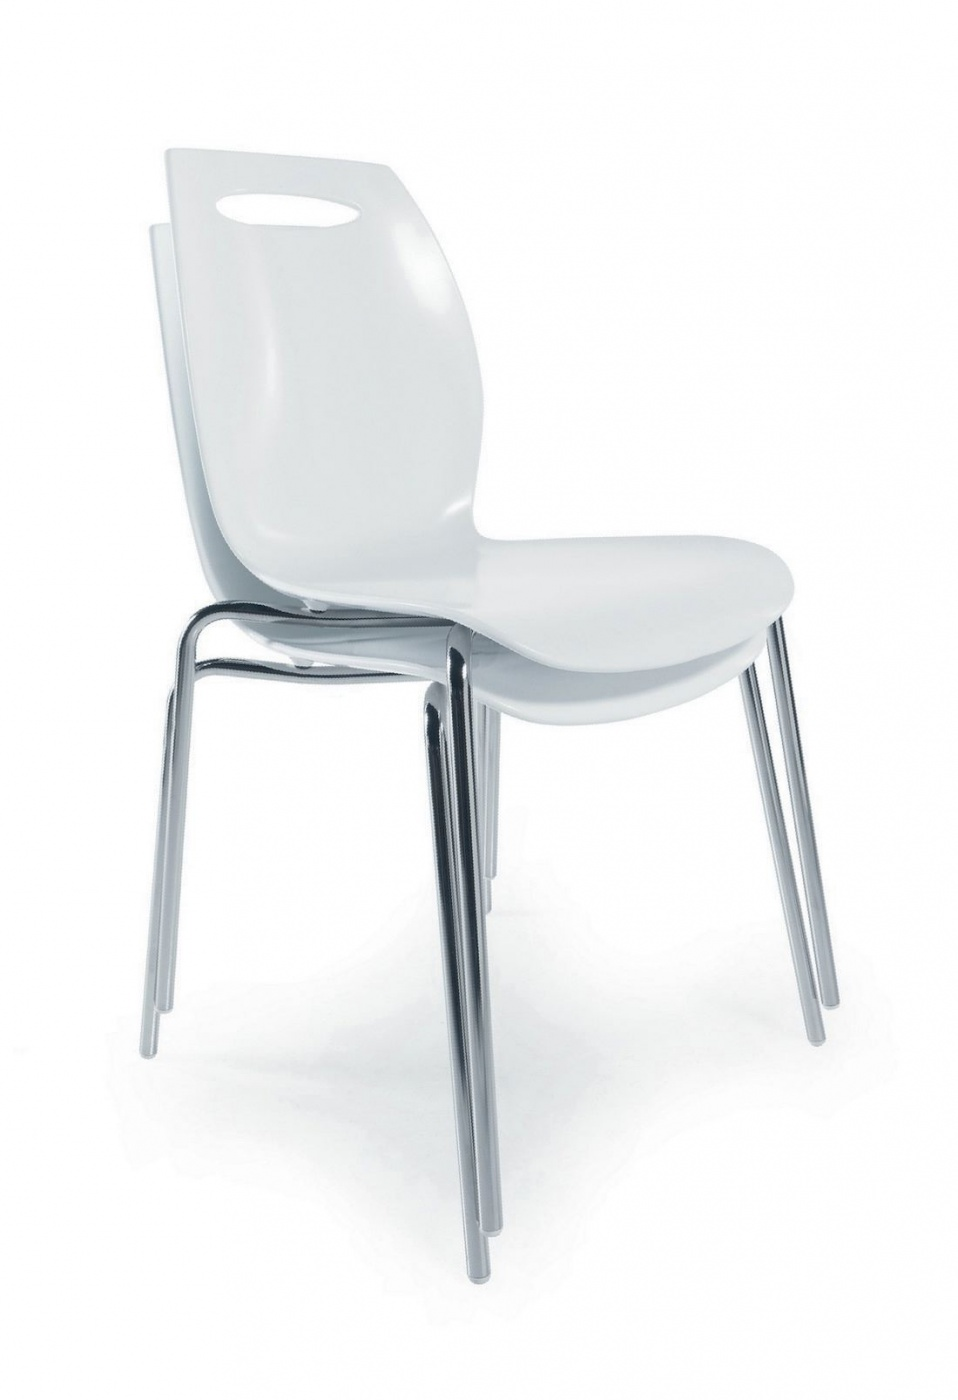 Steel with varnished or chrome-plated steel frame. Seat: composit technopolymer.